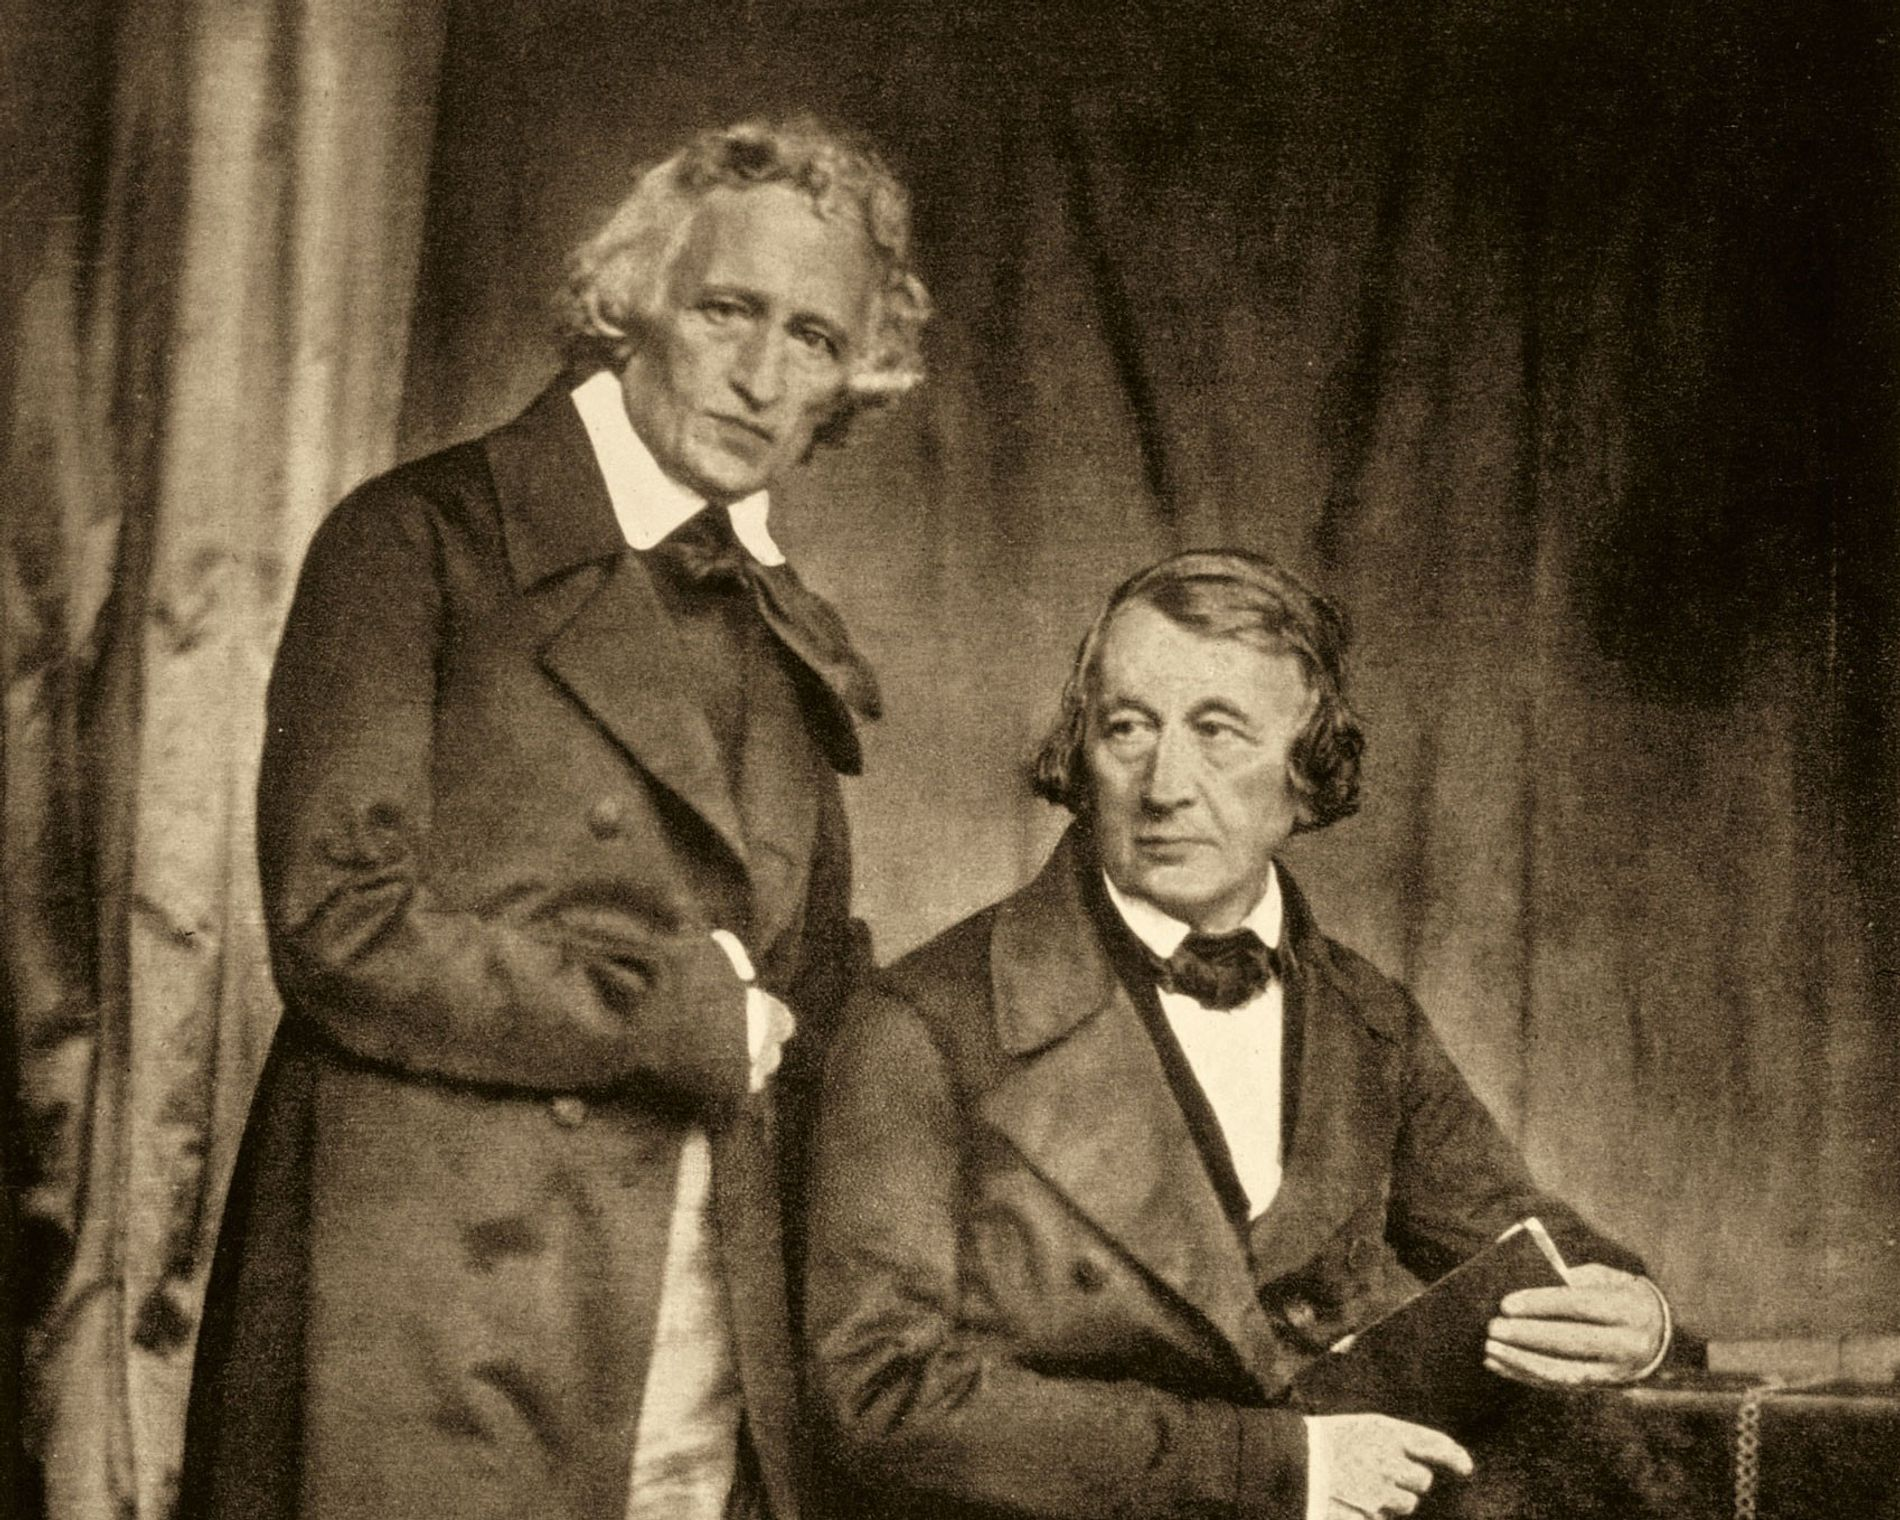 Jacob and Wilhelm Grimm's collection of German folktales, first published in 1812, were much edgier than ...